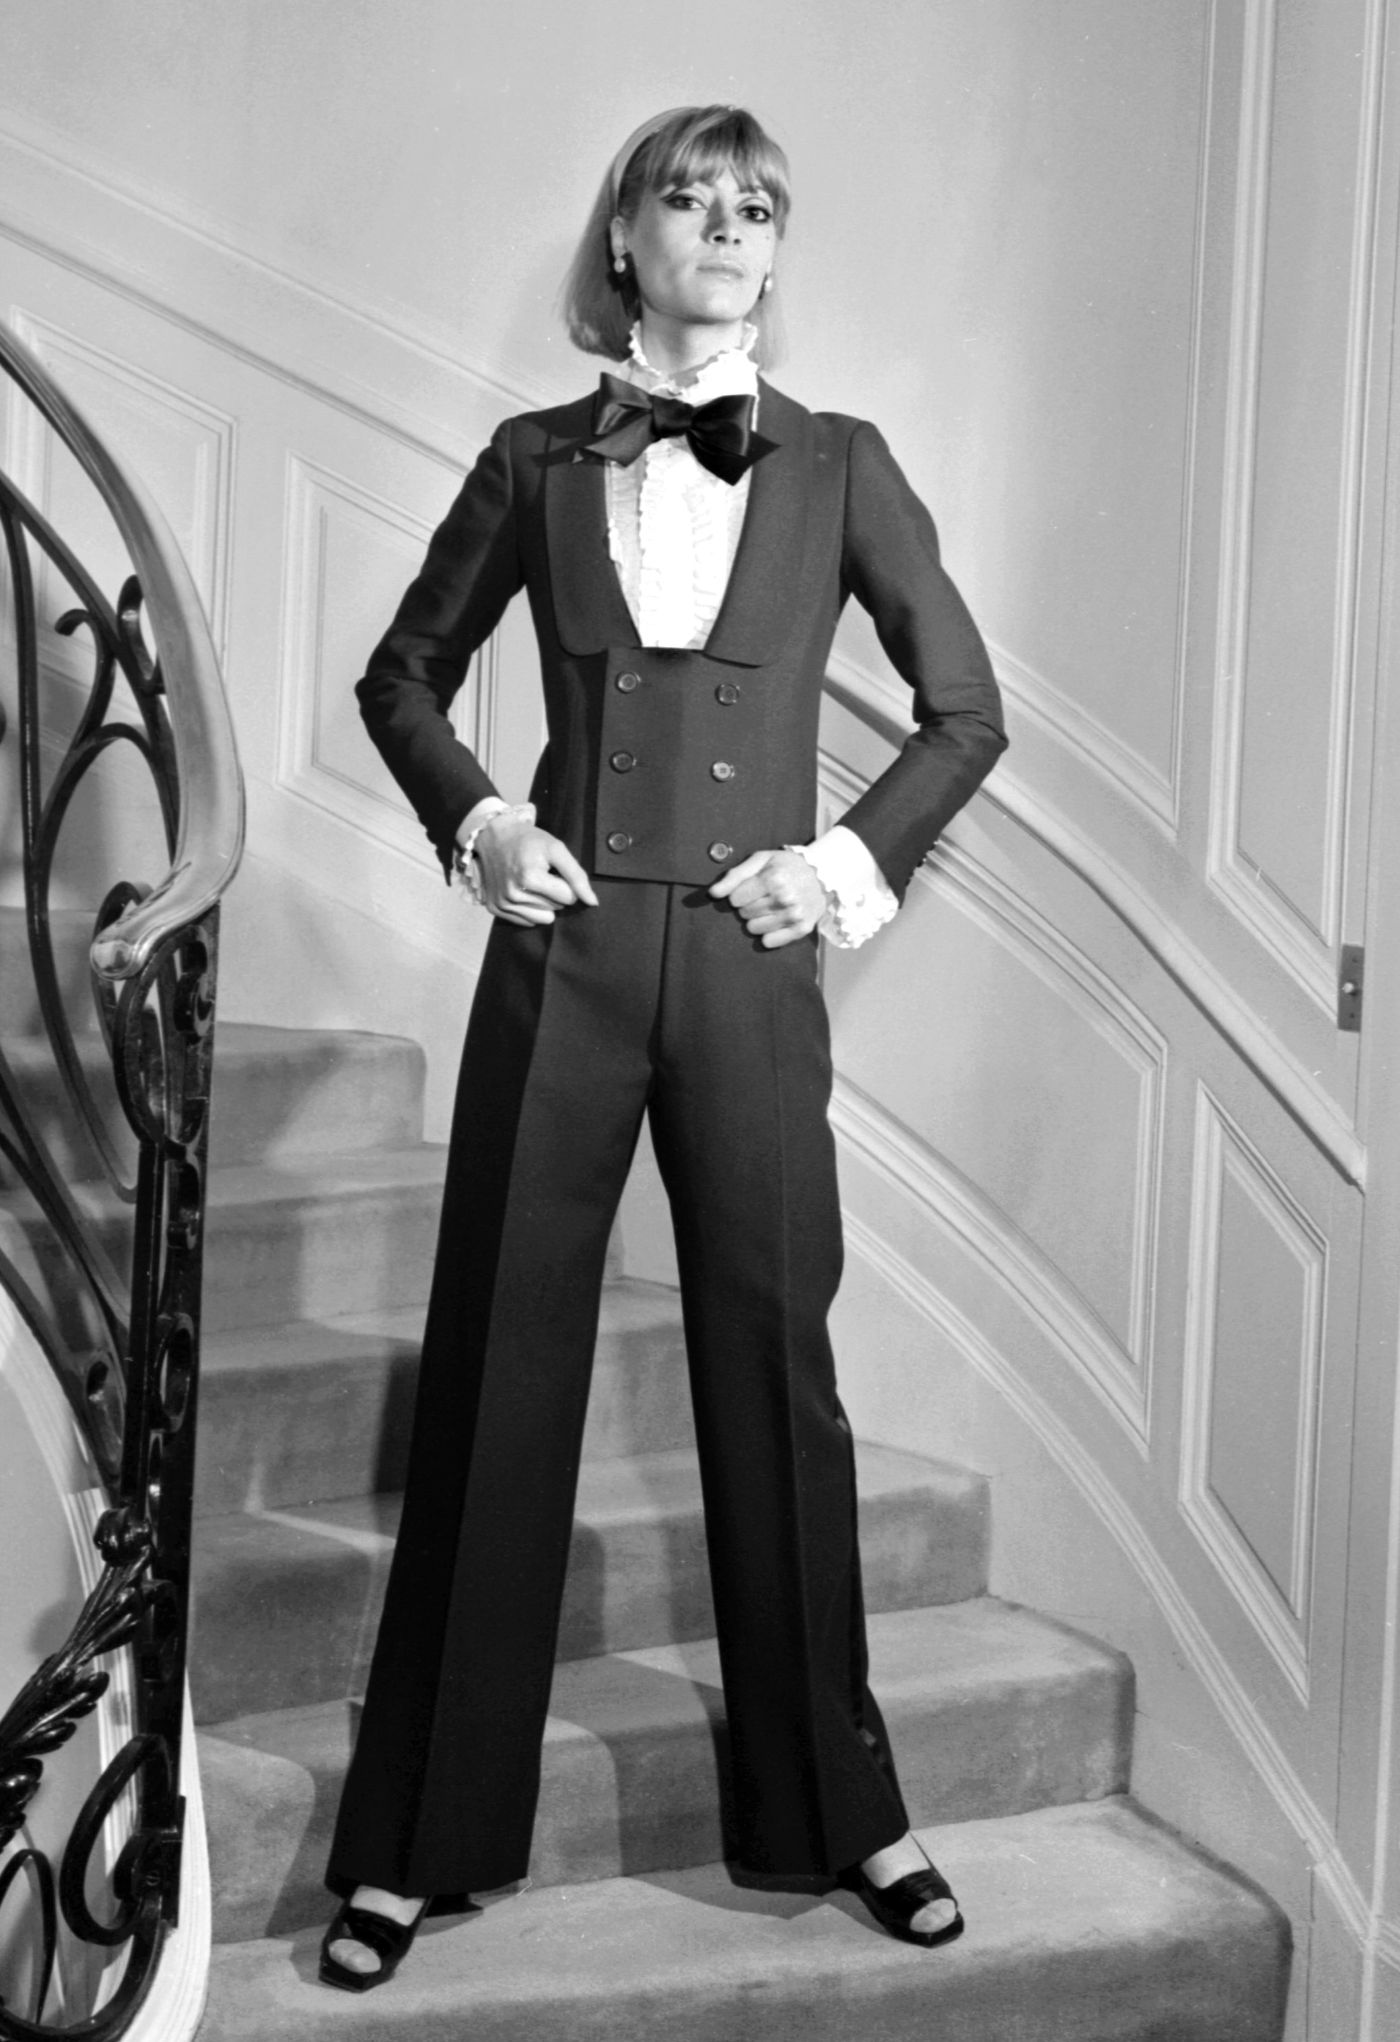 df7f45b5595 Pantsuits for Women Were Once Illegal - Racked